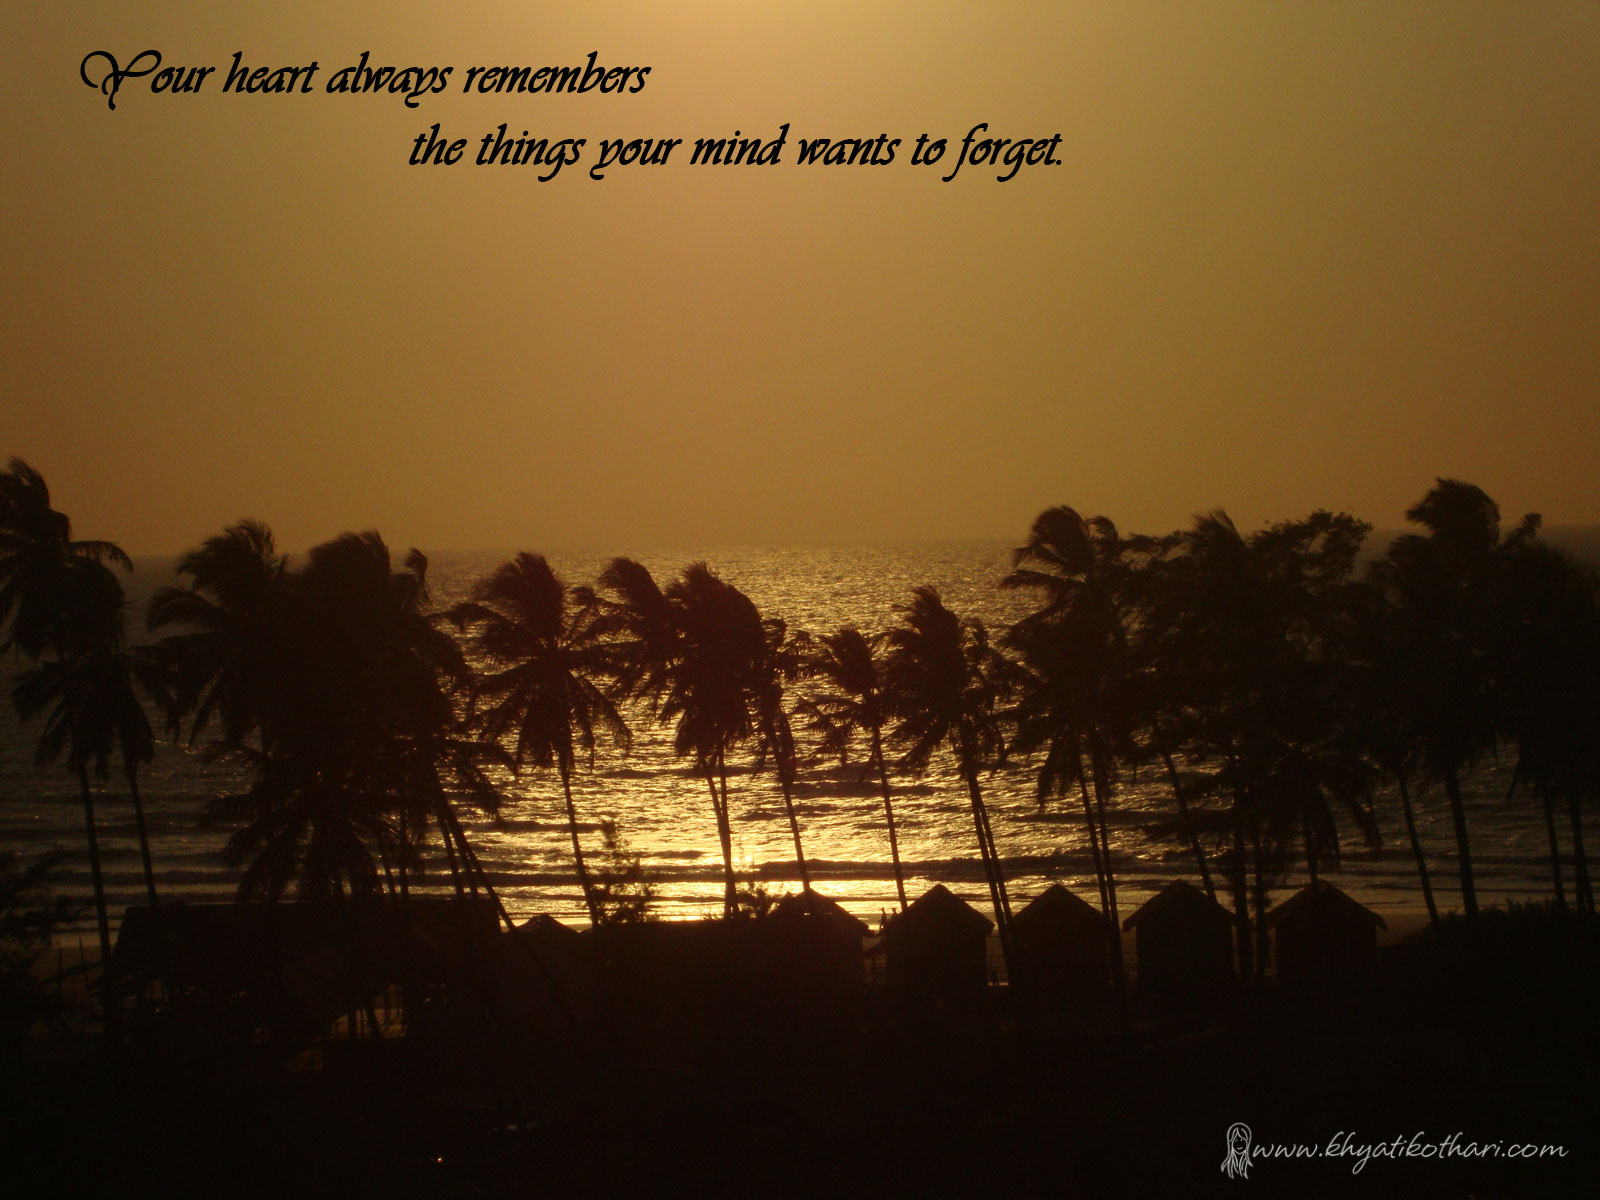 Your heart always remembers